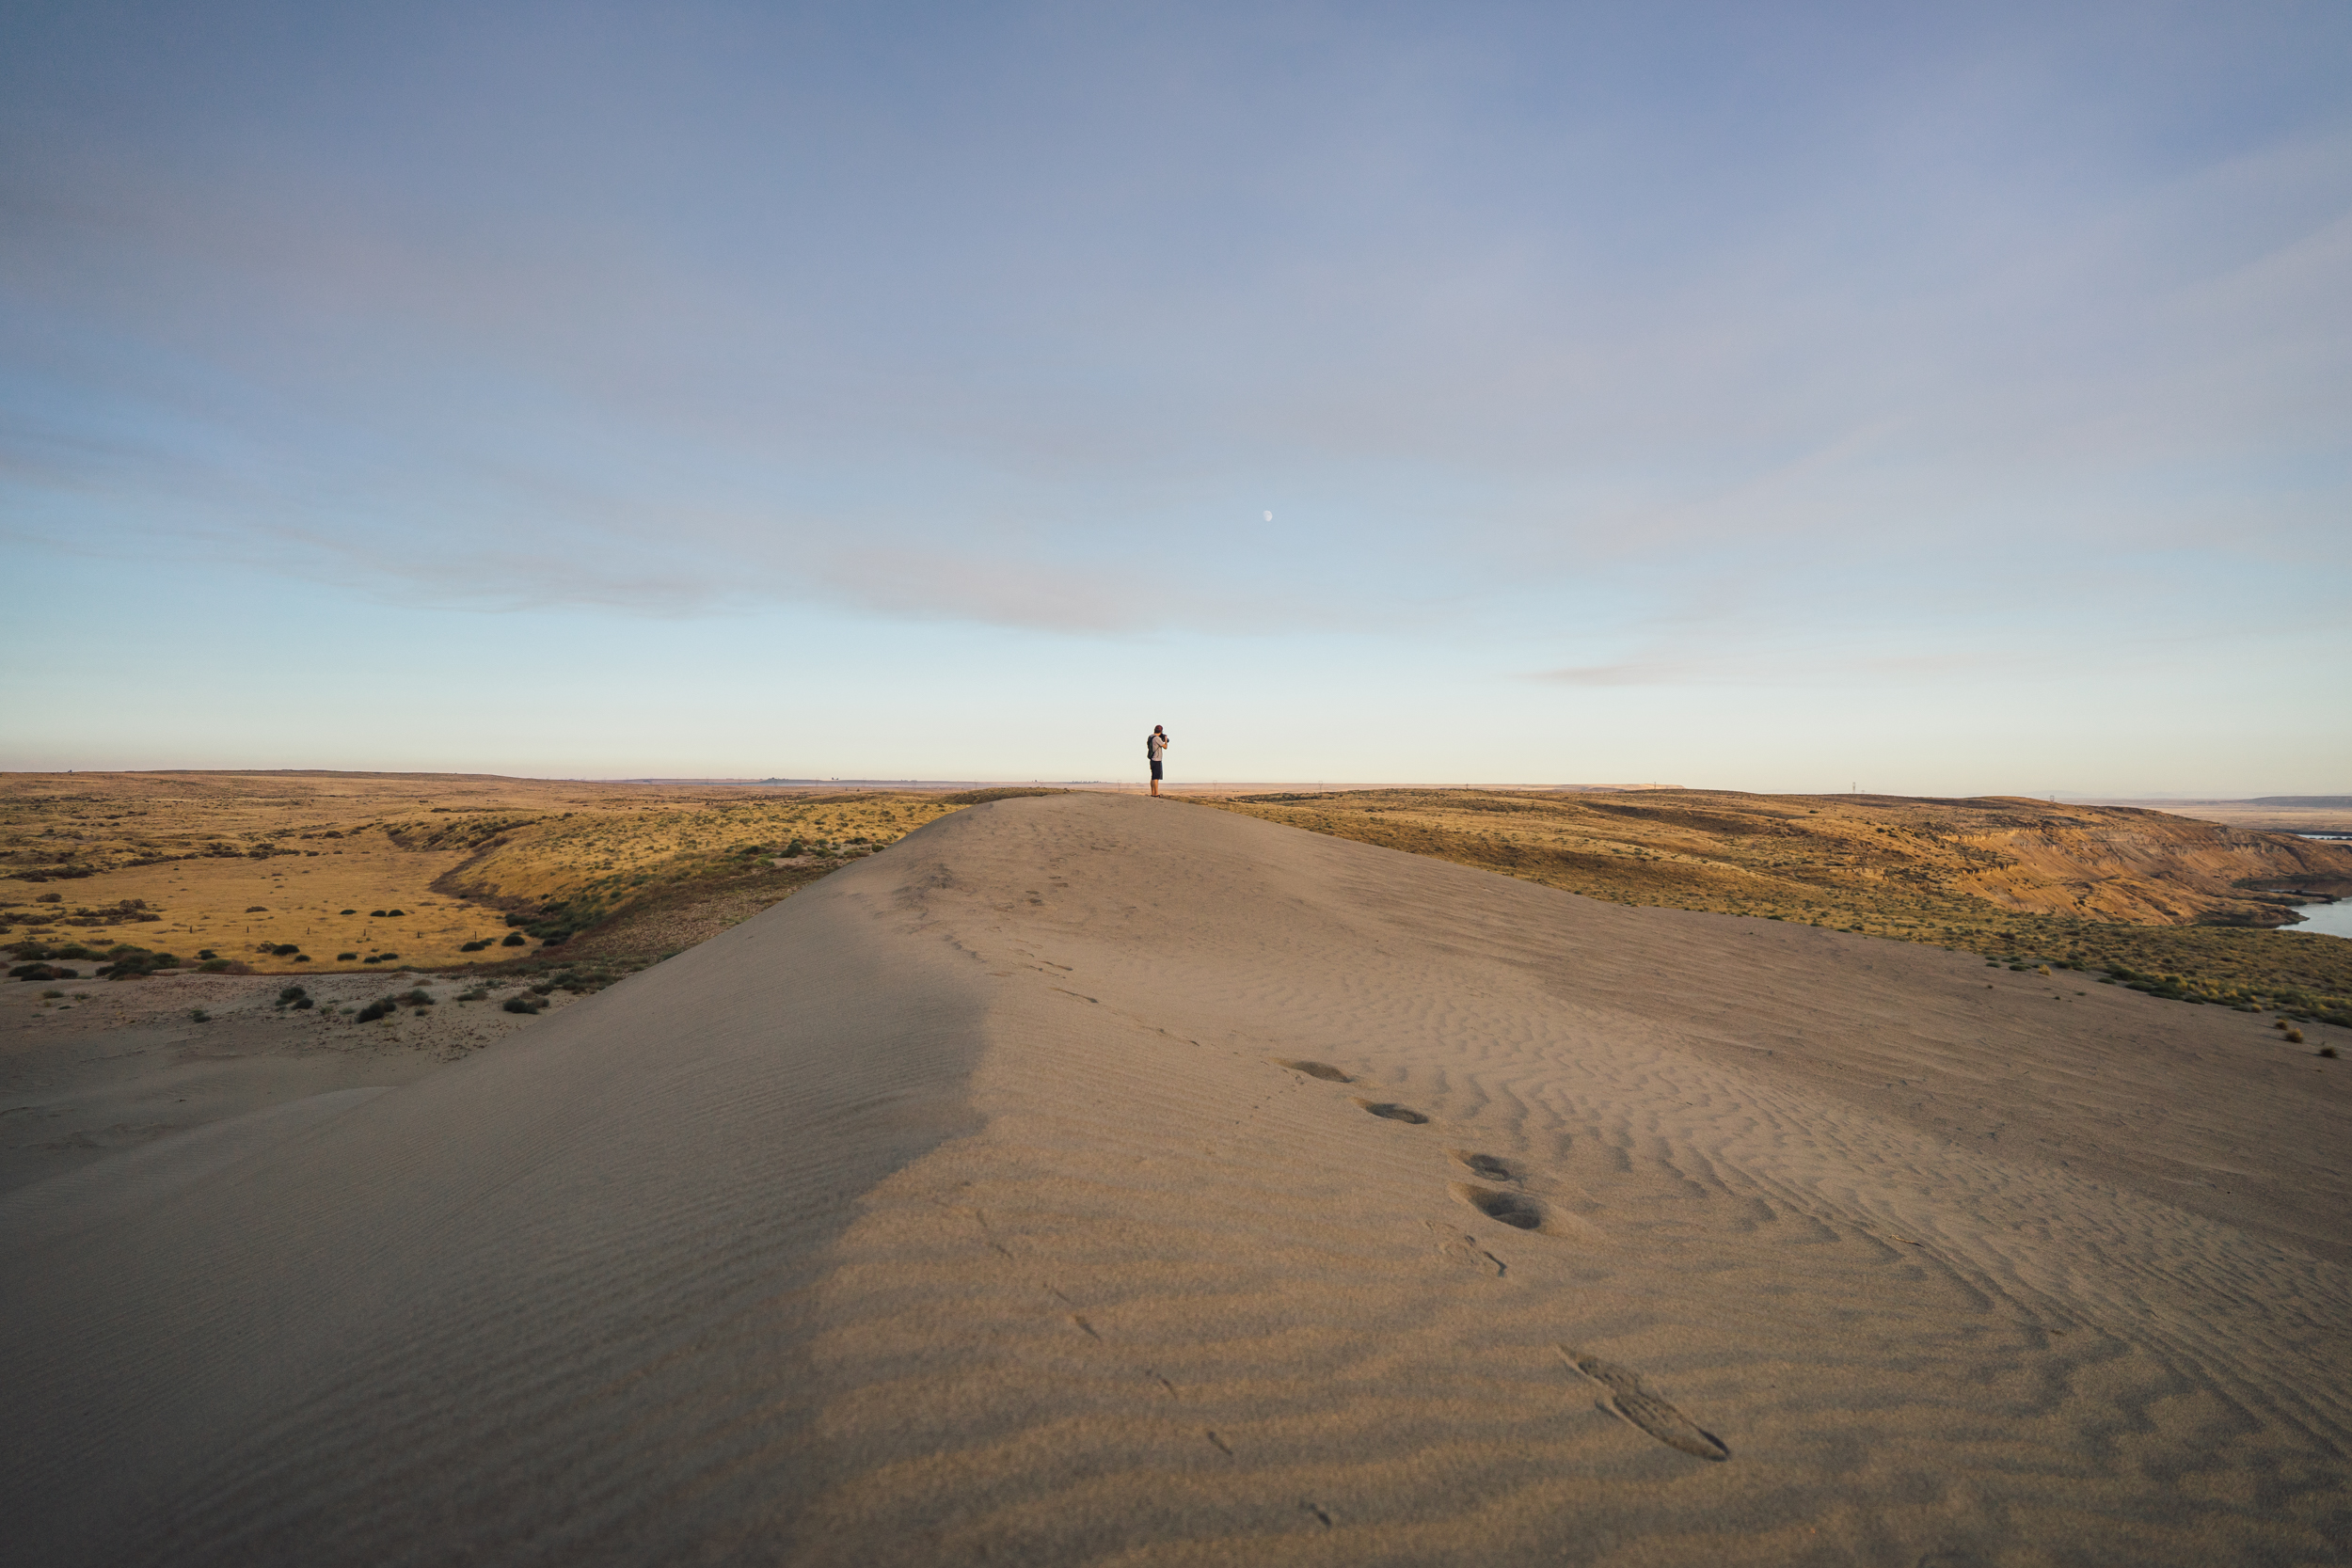 - Reaching the first sand dune, we arrived to a breathtaking sight.